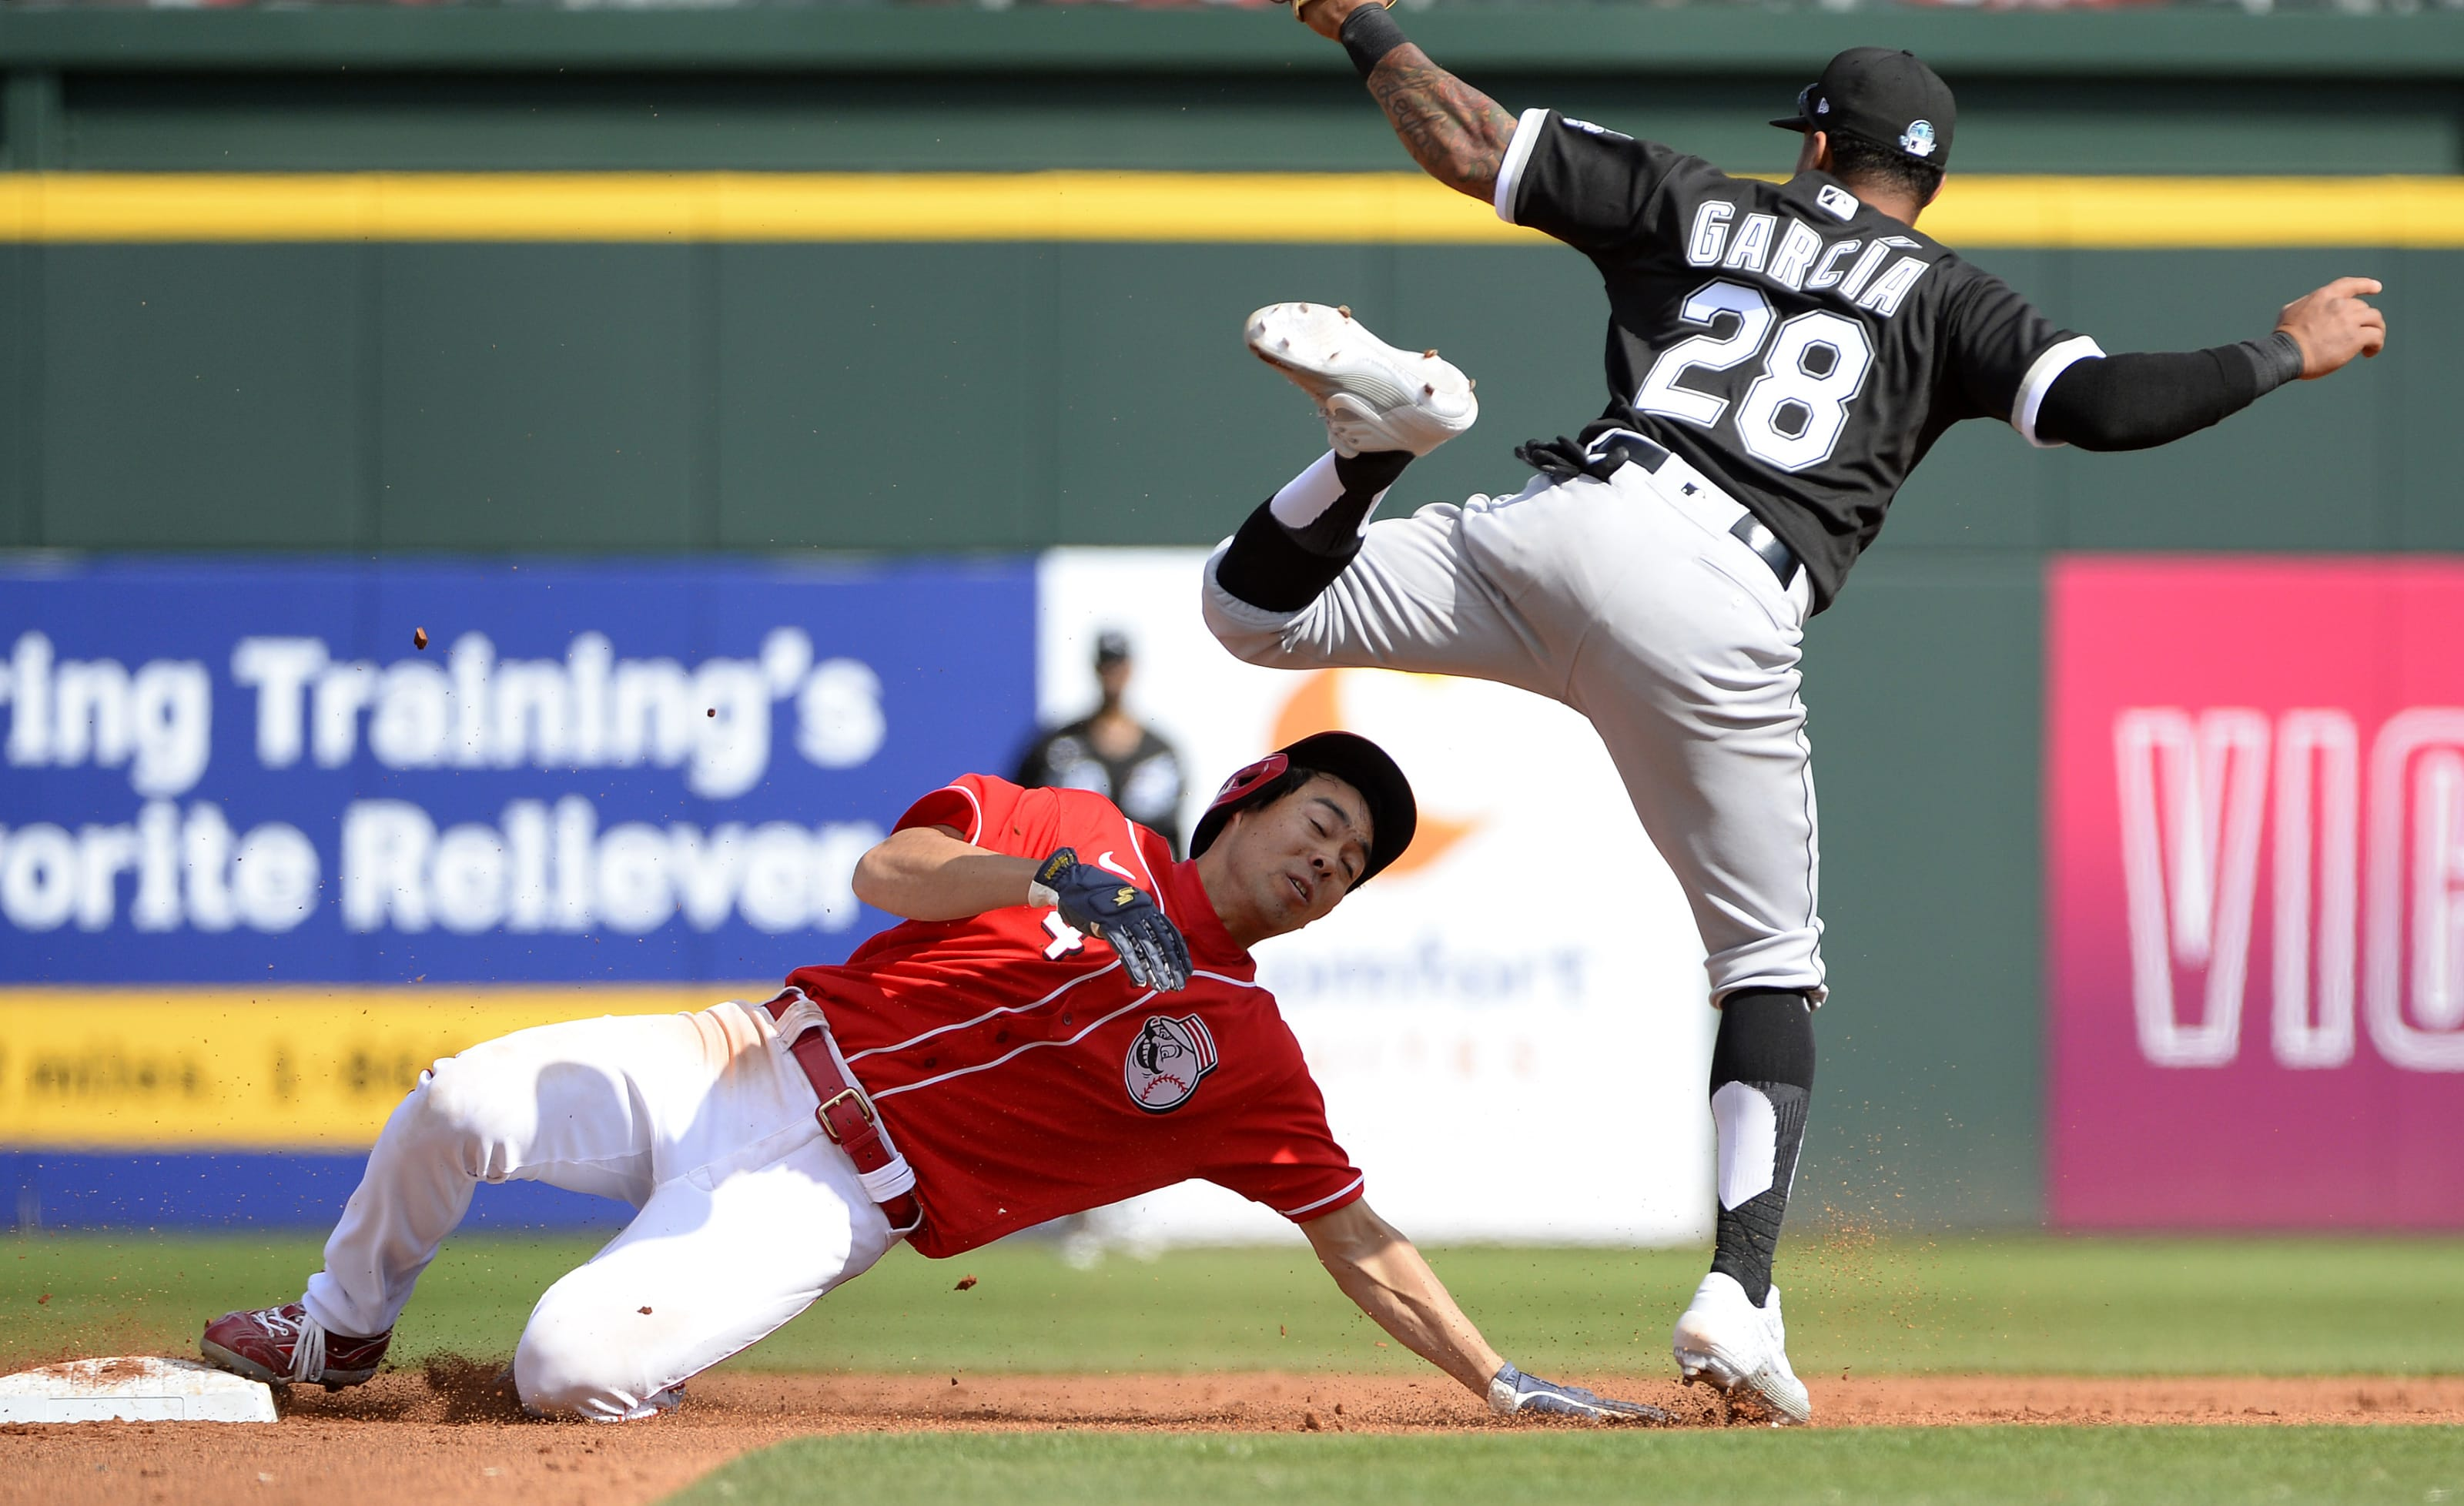 Shogo Akiyama #4 of the Cincinnati Reds is tagged out by Leury Garcia #28 of the Chicago White Sox.